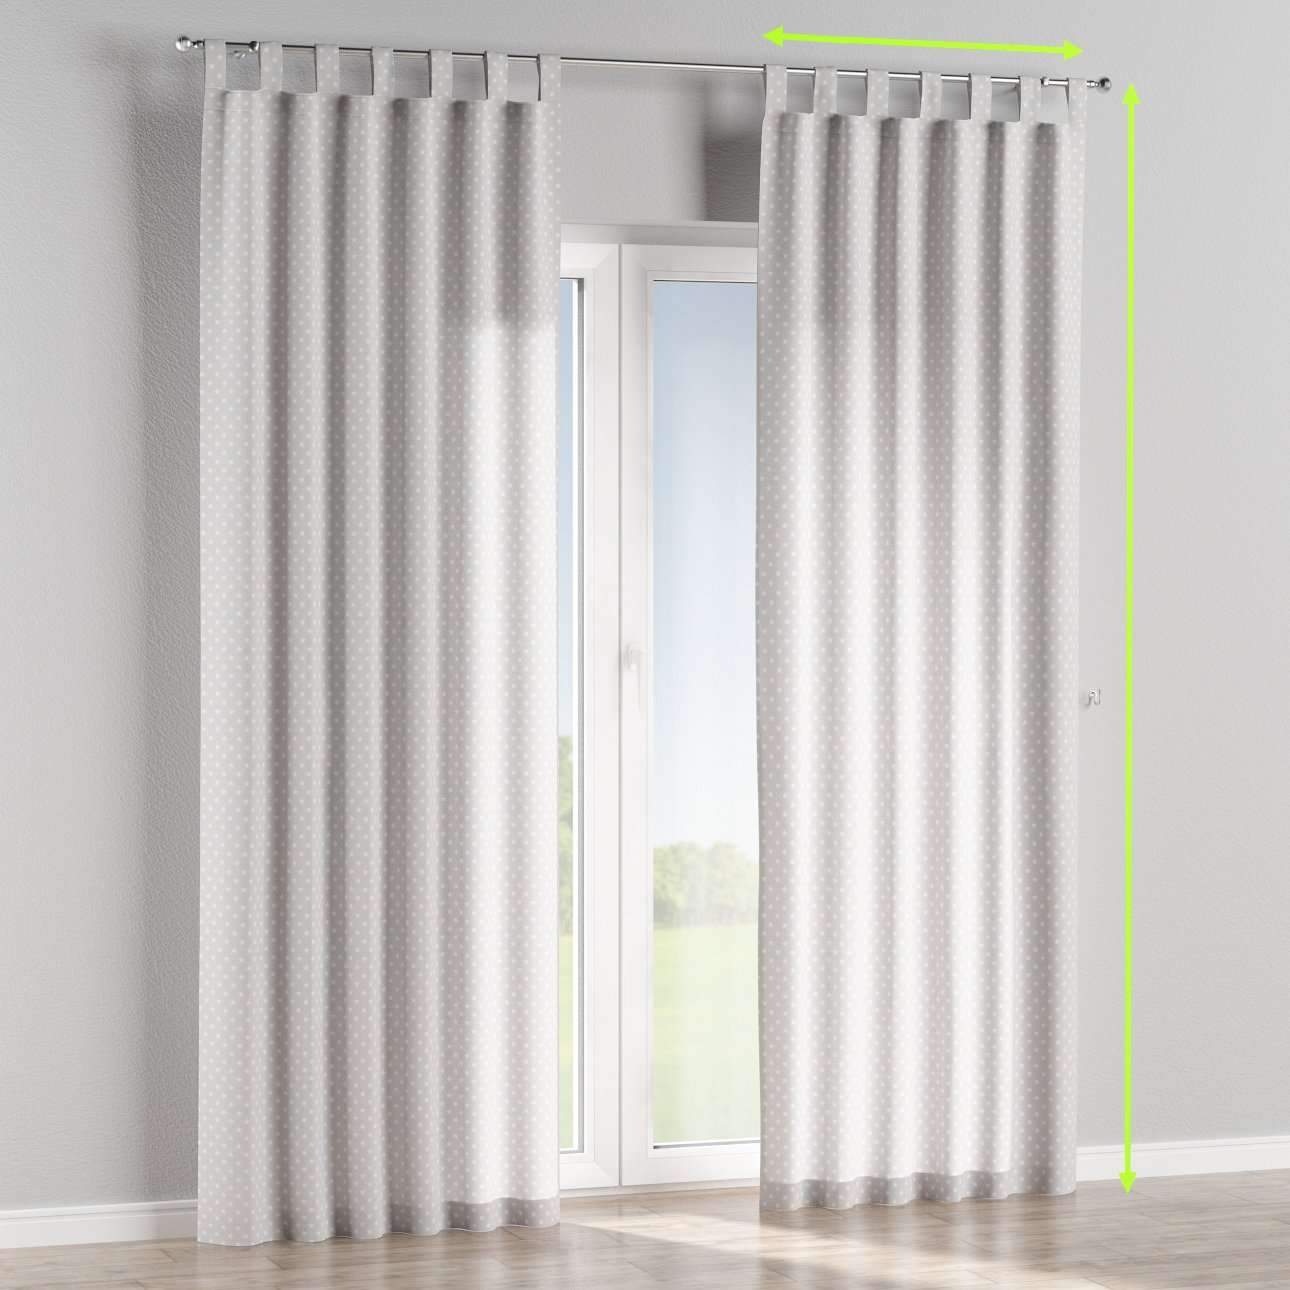 Tab top curtains in collection Ashley, fabric: 137-67